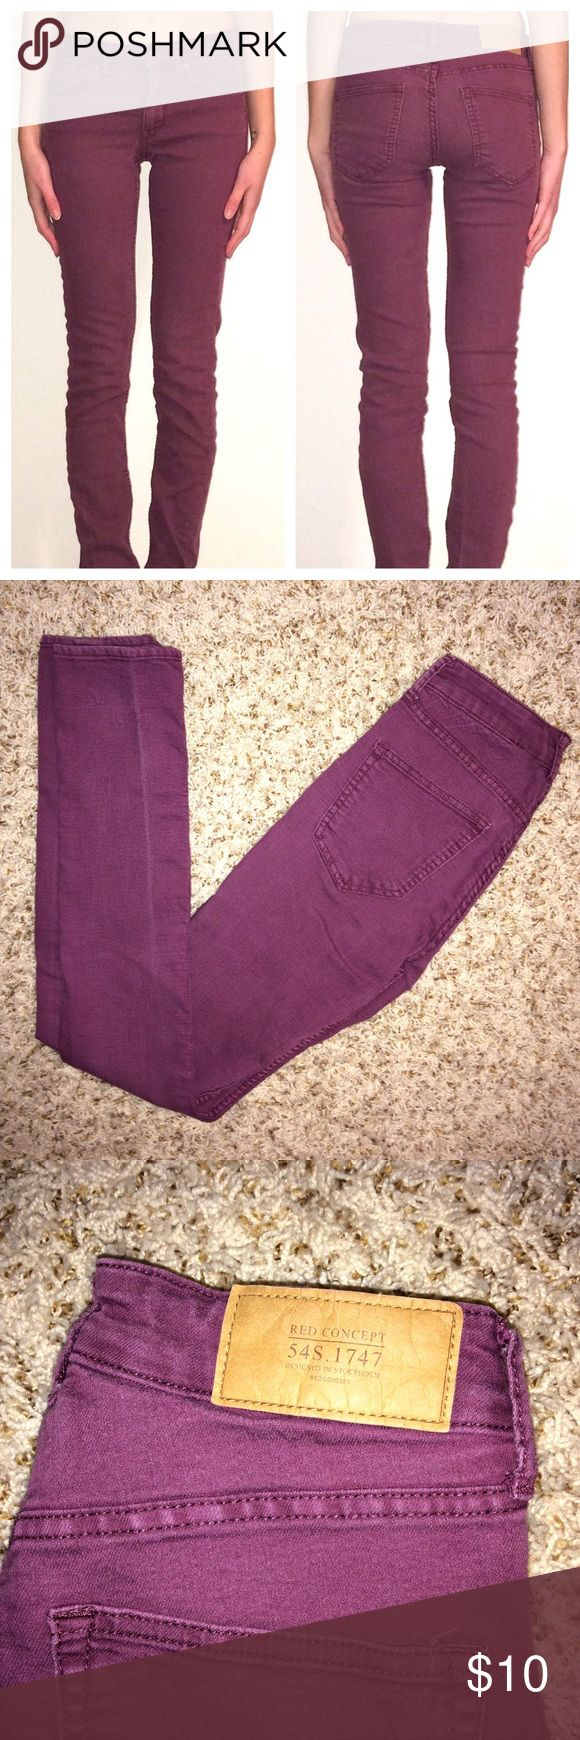 "H&M Divided Red Concept Purple Skinny Jeans In pre-worn condition, but still have a lot of wear left. Purple stretch jeans. 32"" inseams. H&M Jeans Skinny"